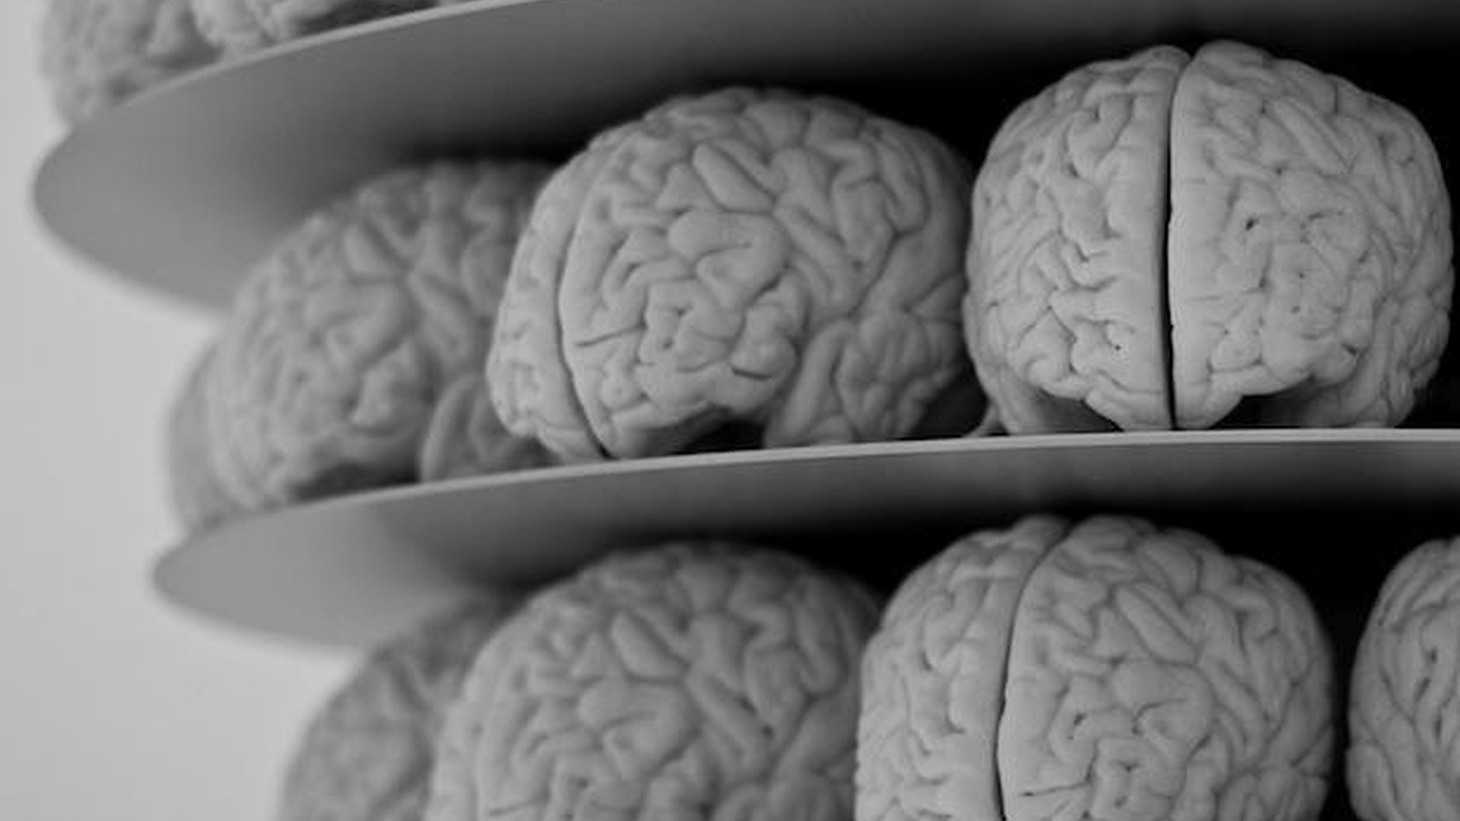 Strange stories of brains that lead their owners astray, knock them off balance, and, sometimes, propel them to do amazing things.